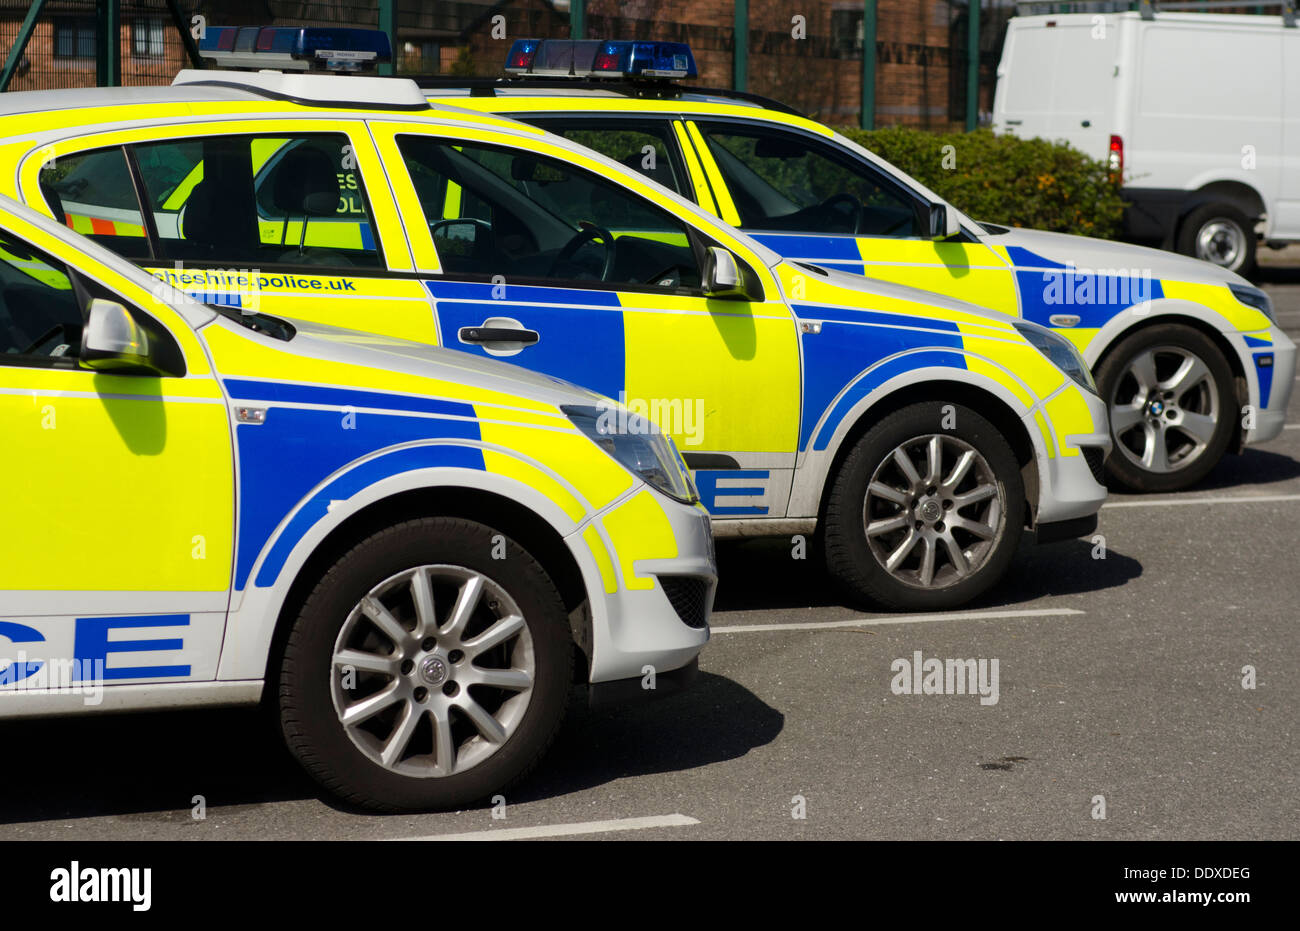 Police cars lined up in a car park, showing vivid fluorescent  yellow and blue markings. - Stock Image